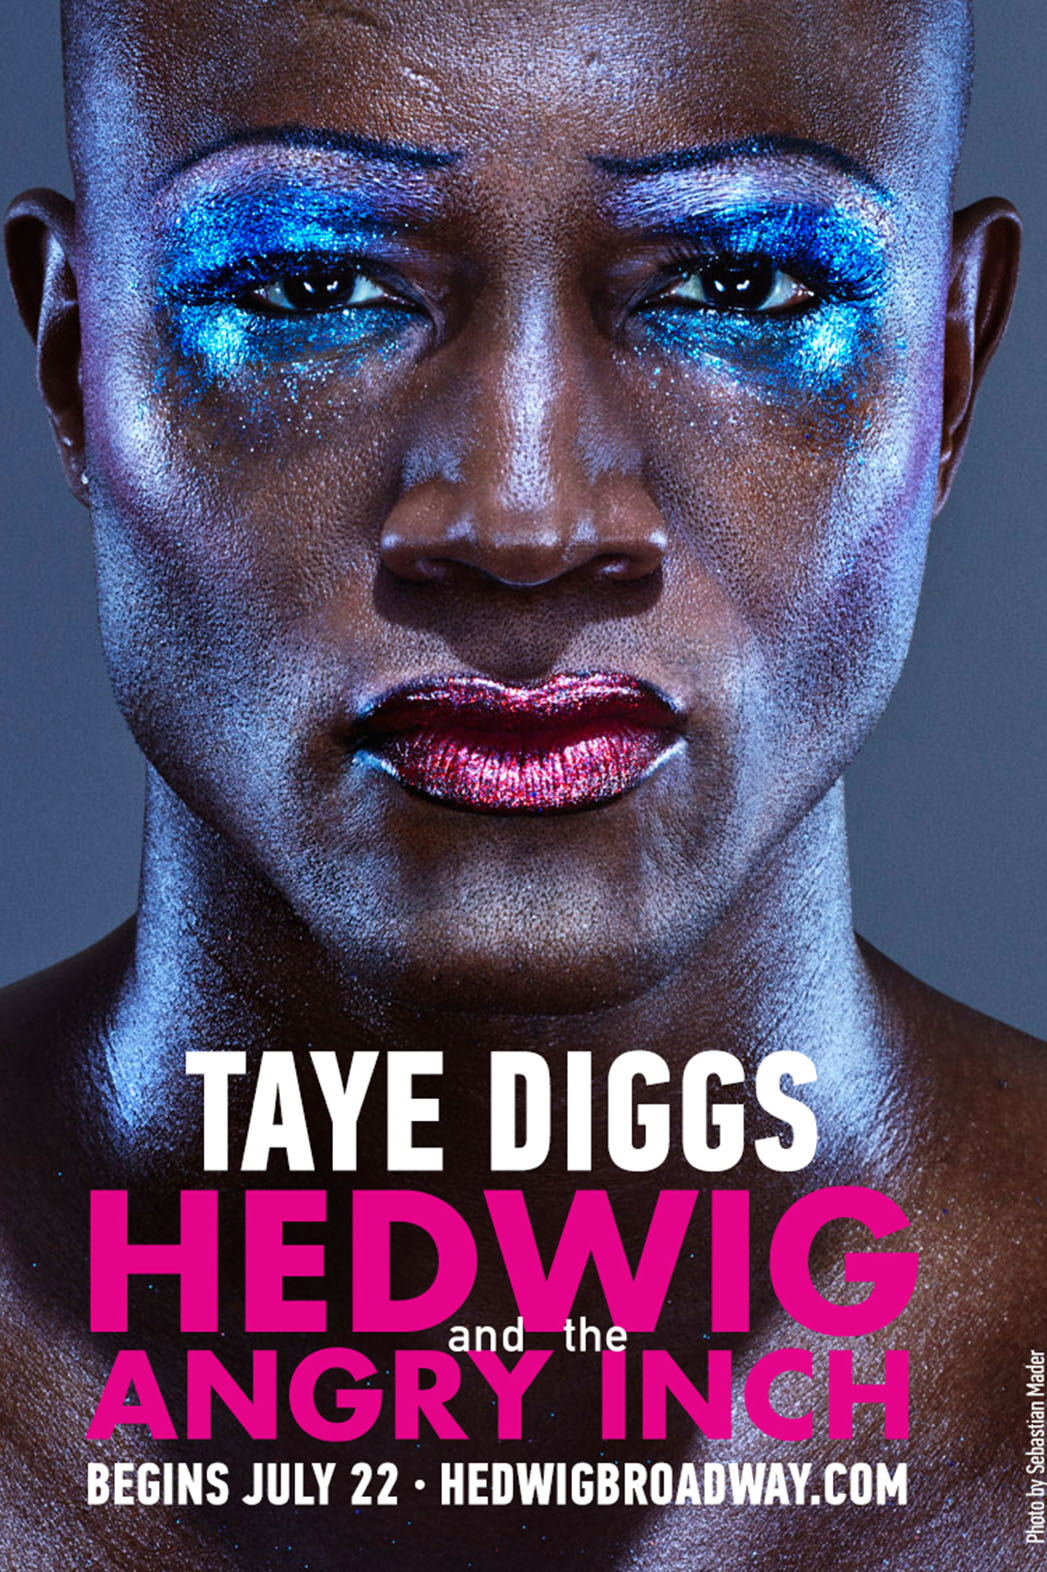 Taye Diggs Hedwig and the Angry Inch Poster - P 2015